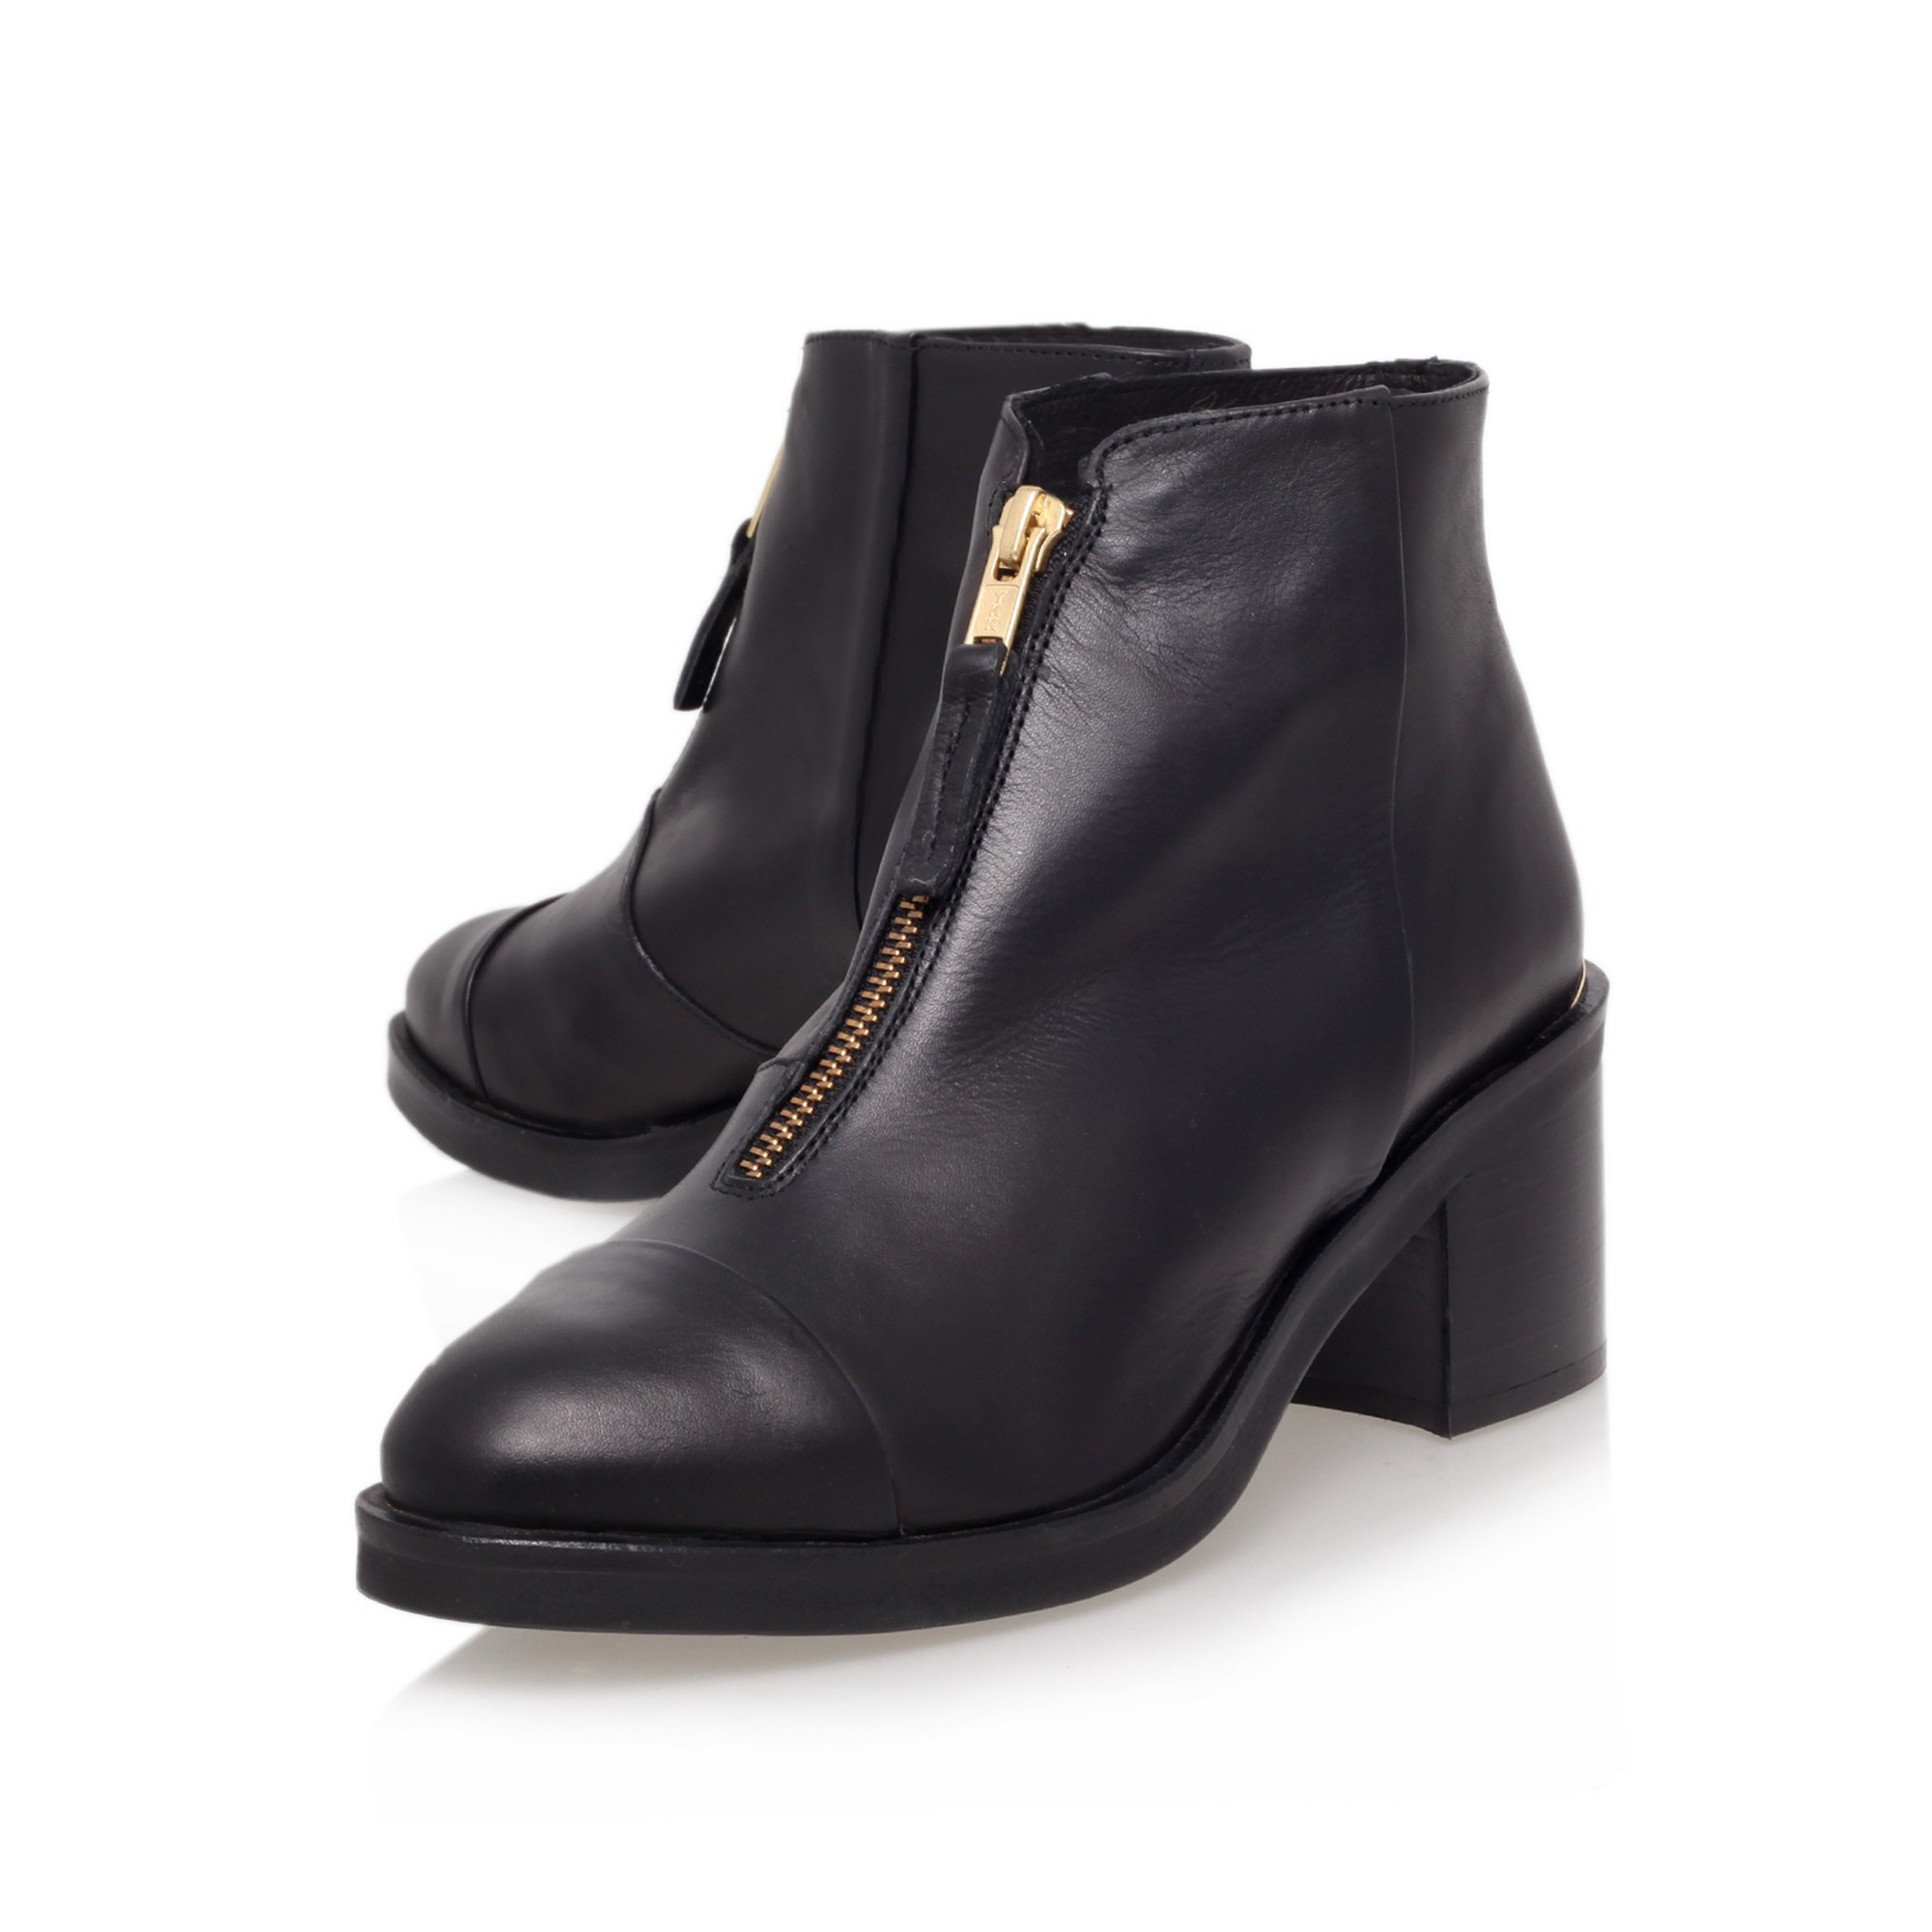 Kg By Kurt Geiger Spencer Leather Front Zip Ankle Boots In